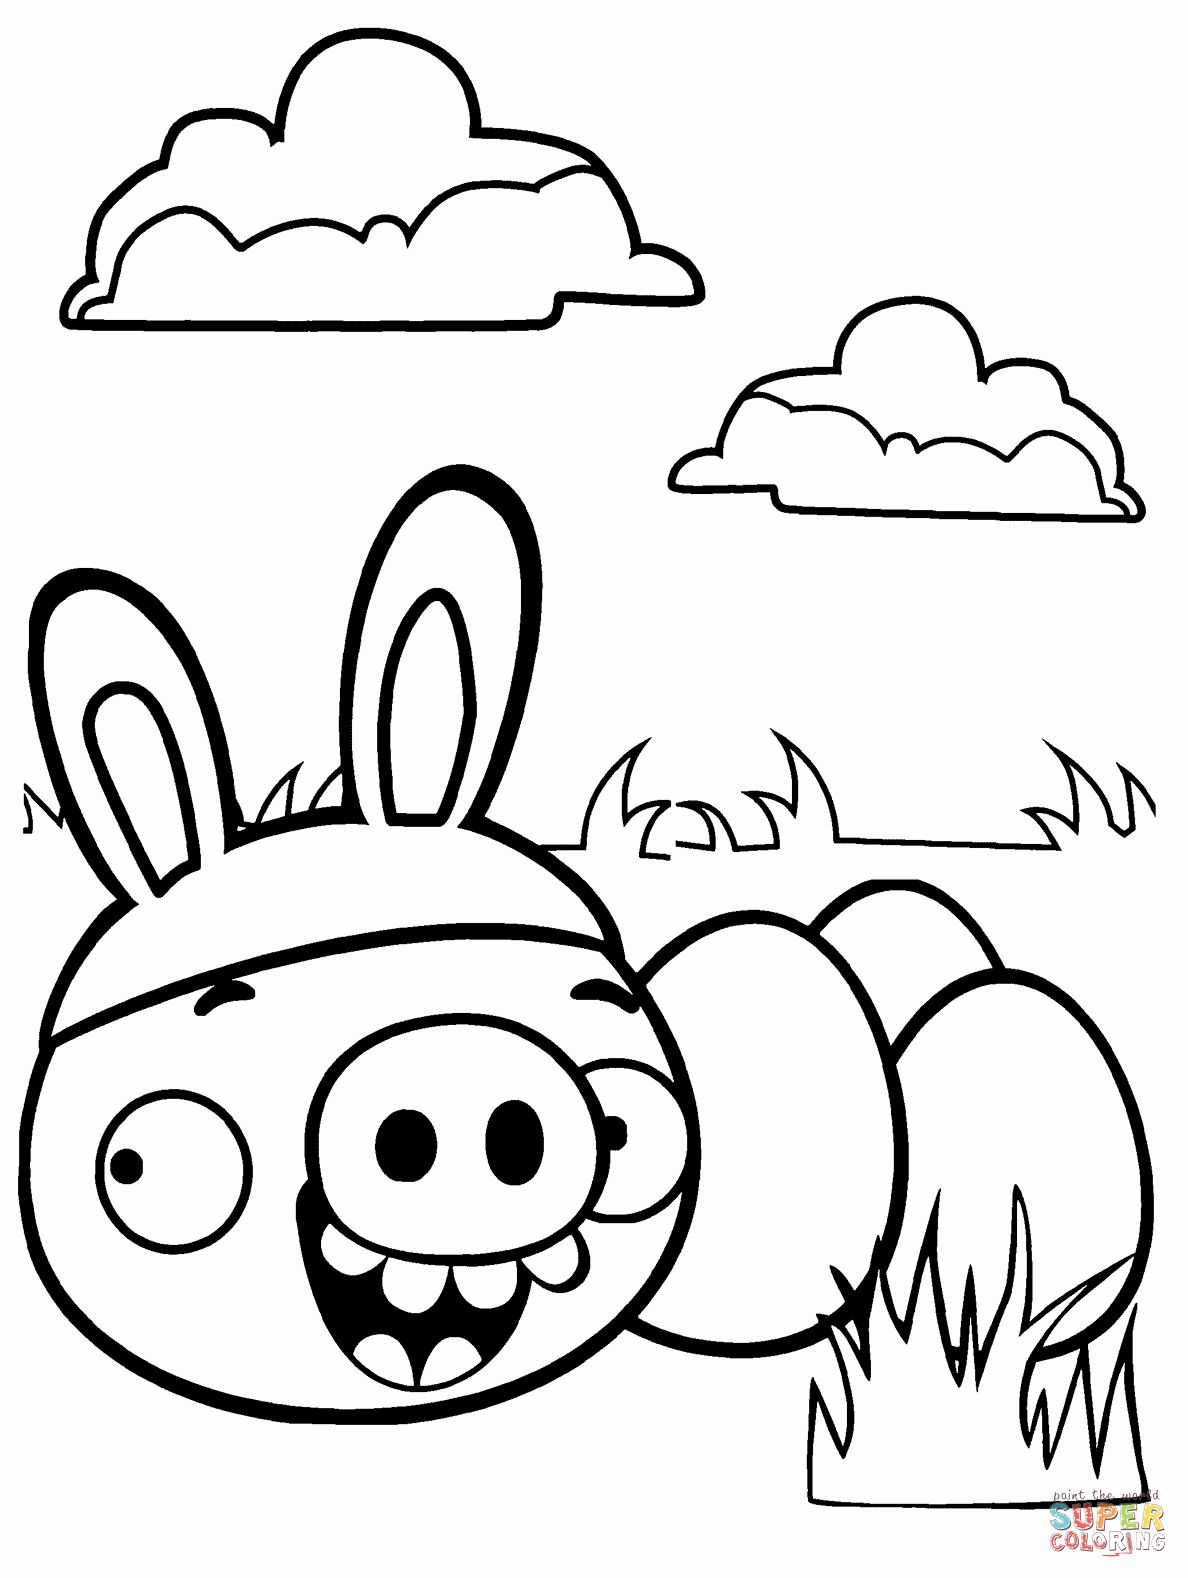 Angry Birds Coloring Book Elegant 15 Best Printable Angry Birds Colouring Pages For Kids Papercraft Estruturas